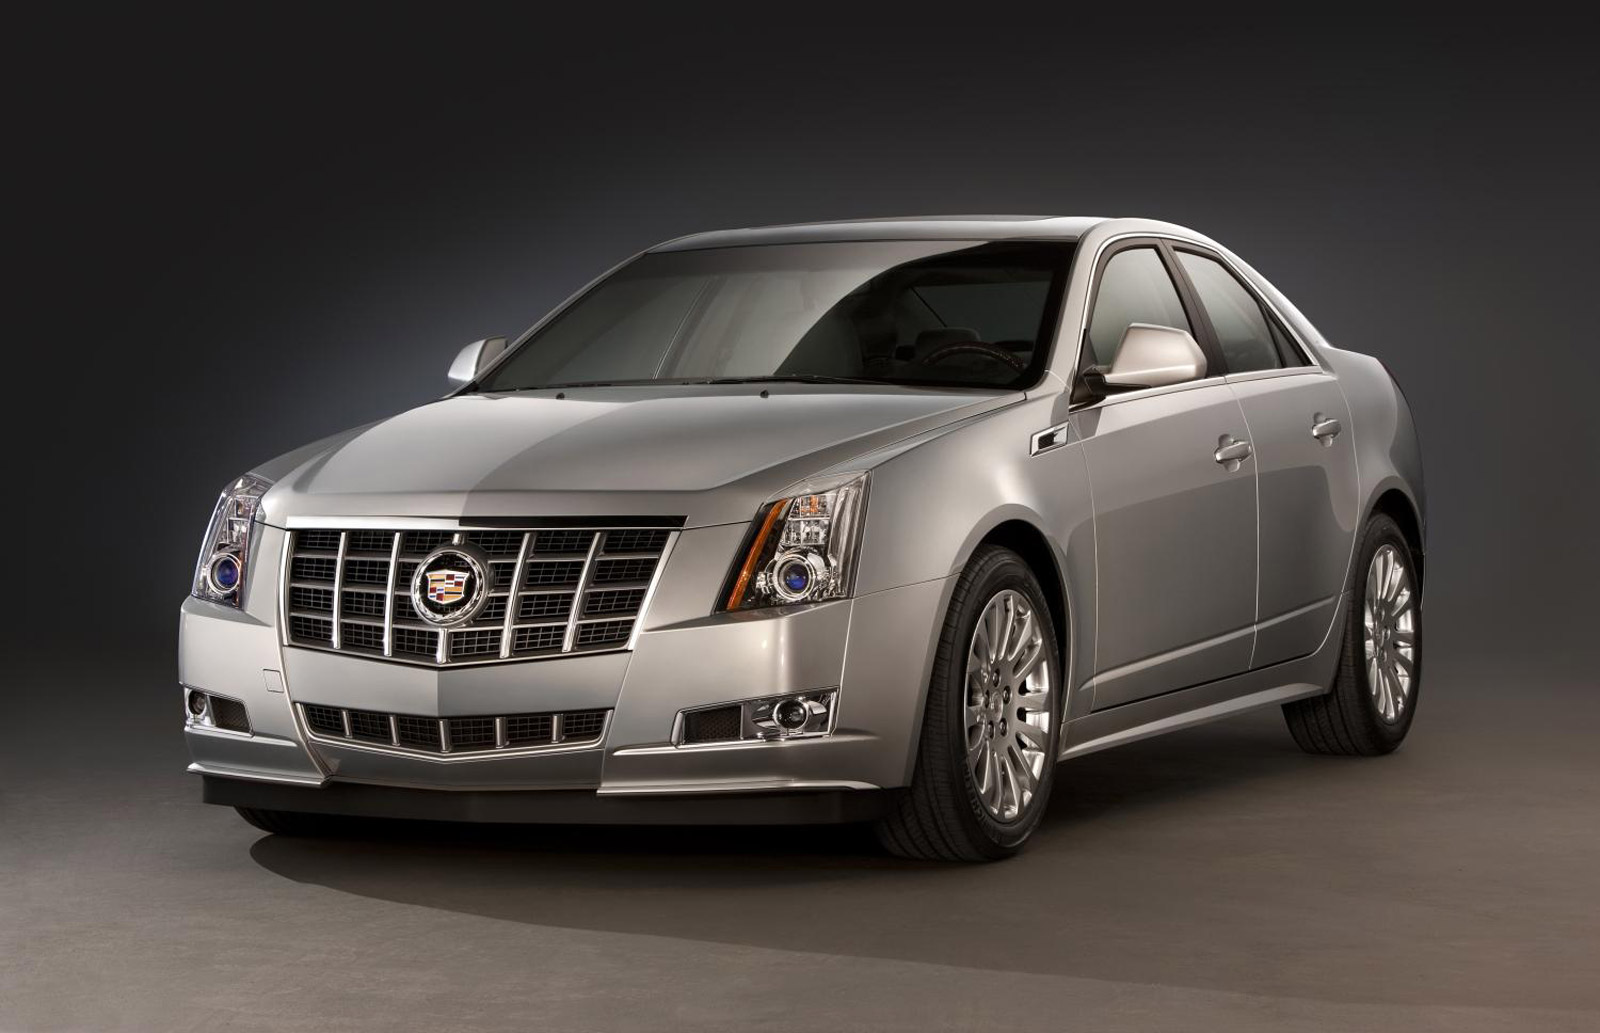 2013 Cadillac Srx >> GM Tells Used Car Dealers To Stop Selling 2003-13 Cadillac CTS, 2004-06 Cadillac SRX